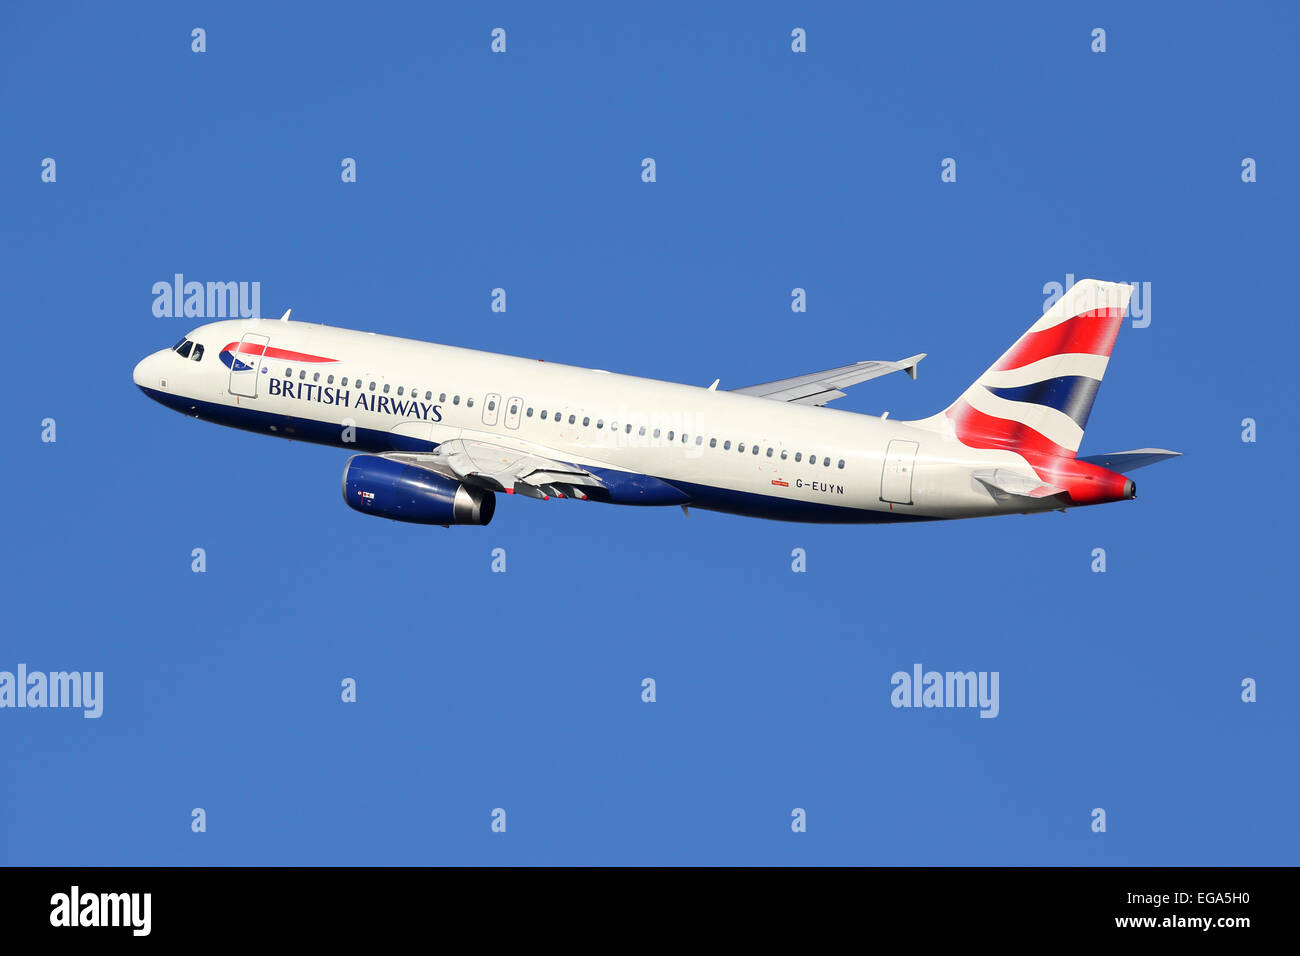 Barcelona, Spain - December 11, 2014: A British Airways Airbus A320 with the registration G-EUYN taking off from - Stock Image